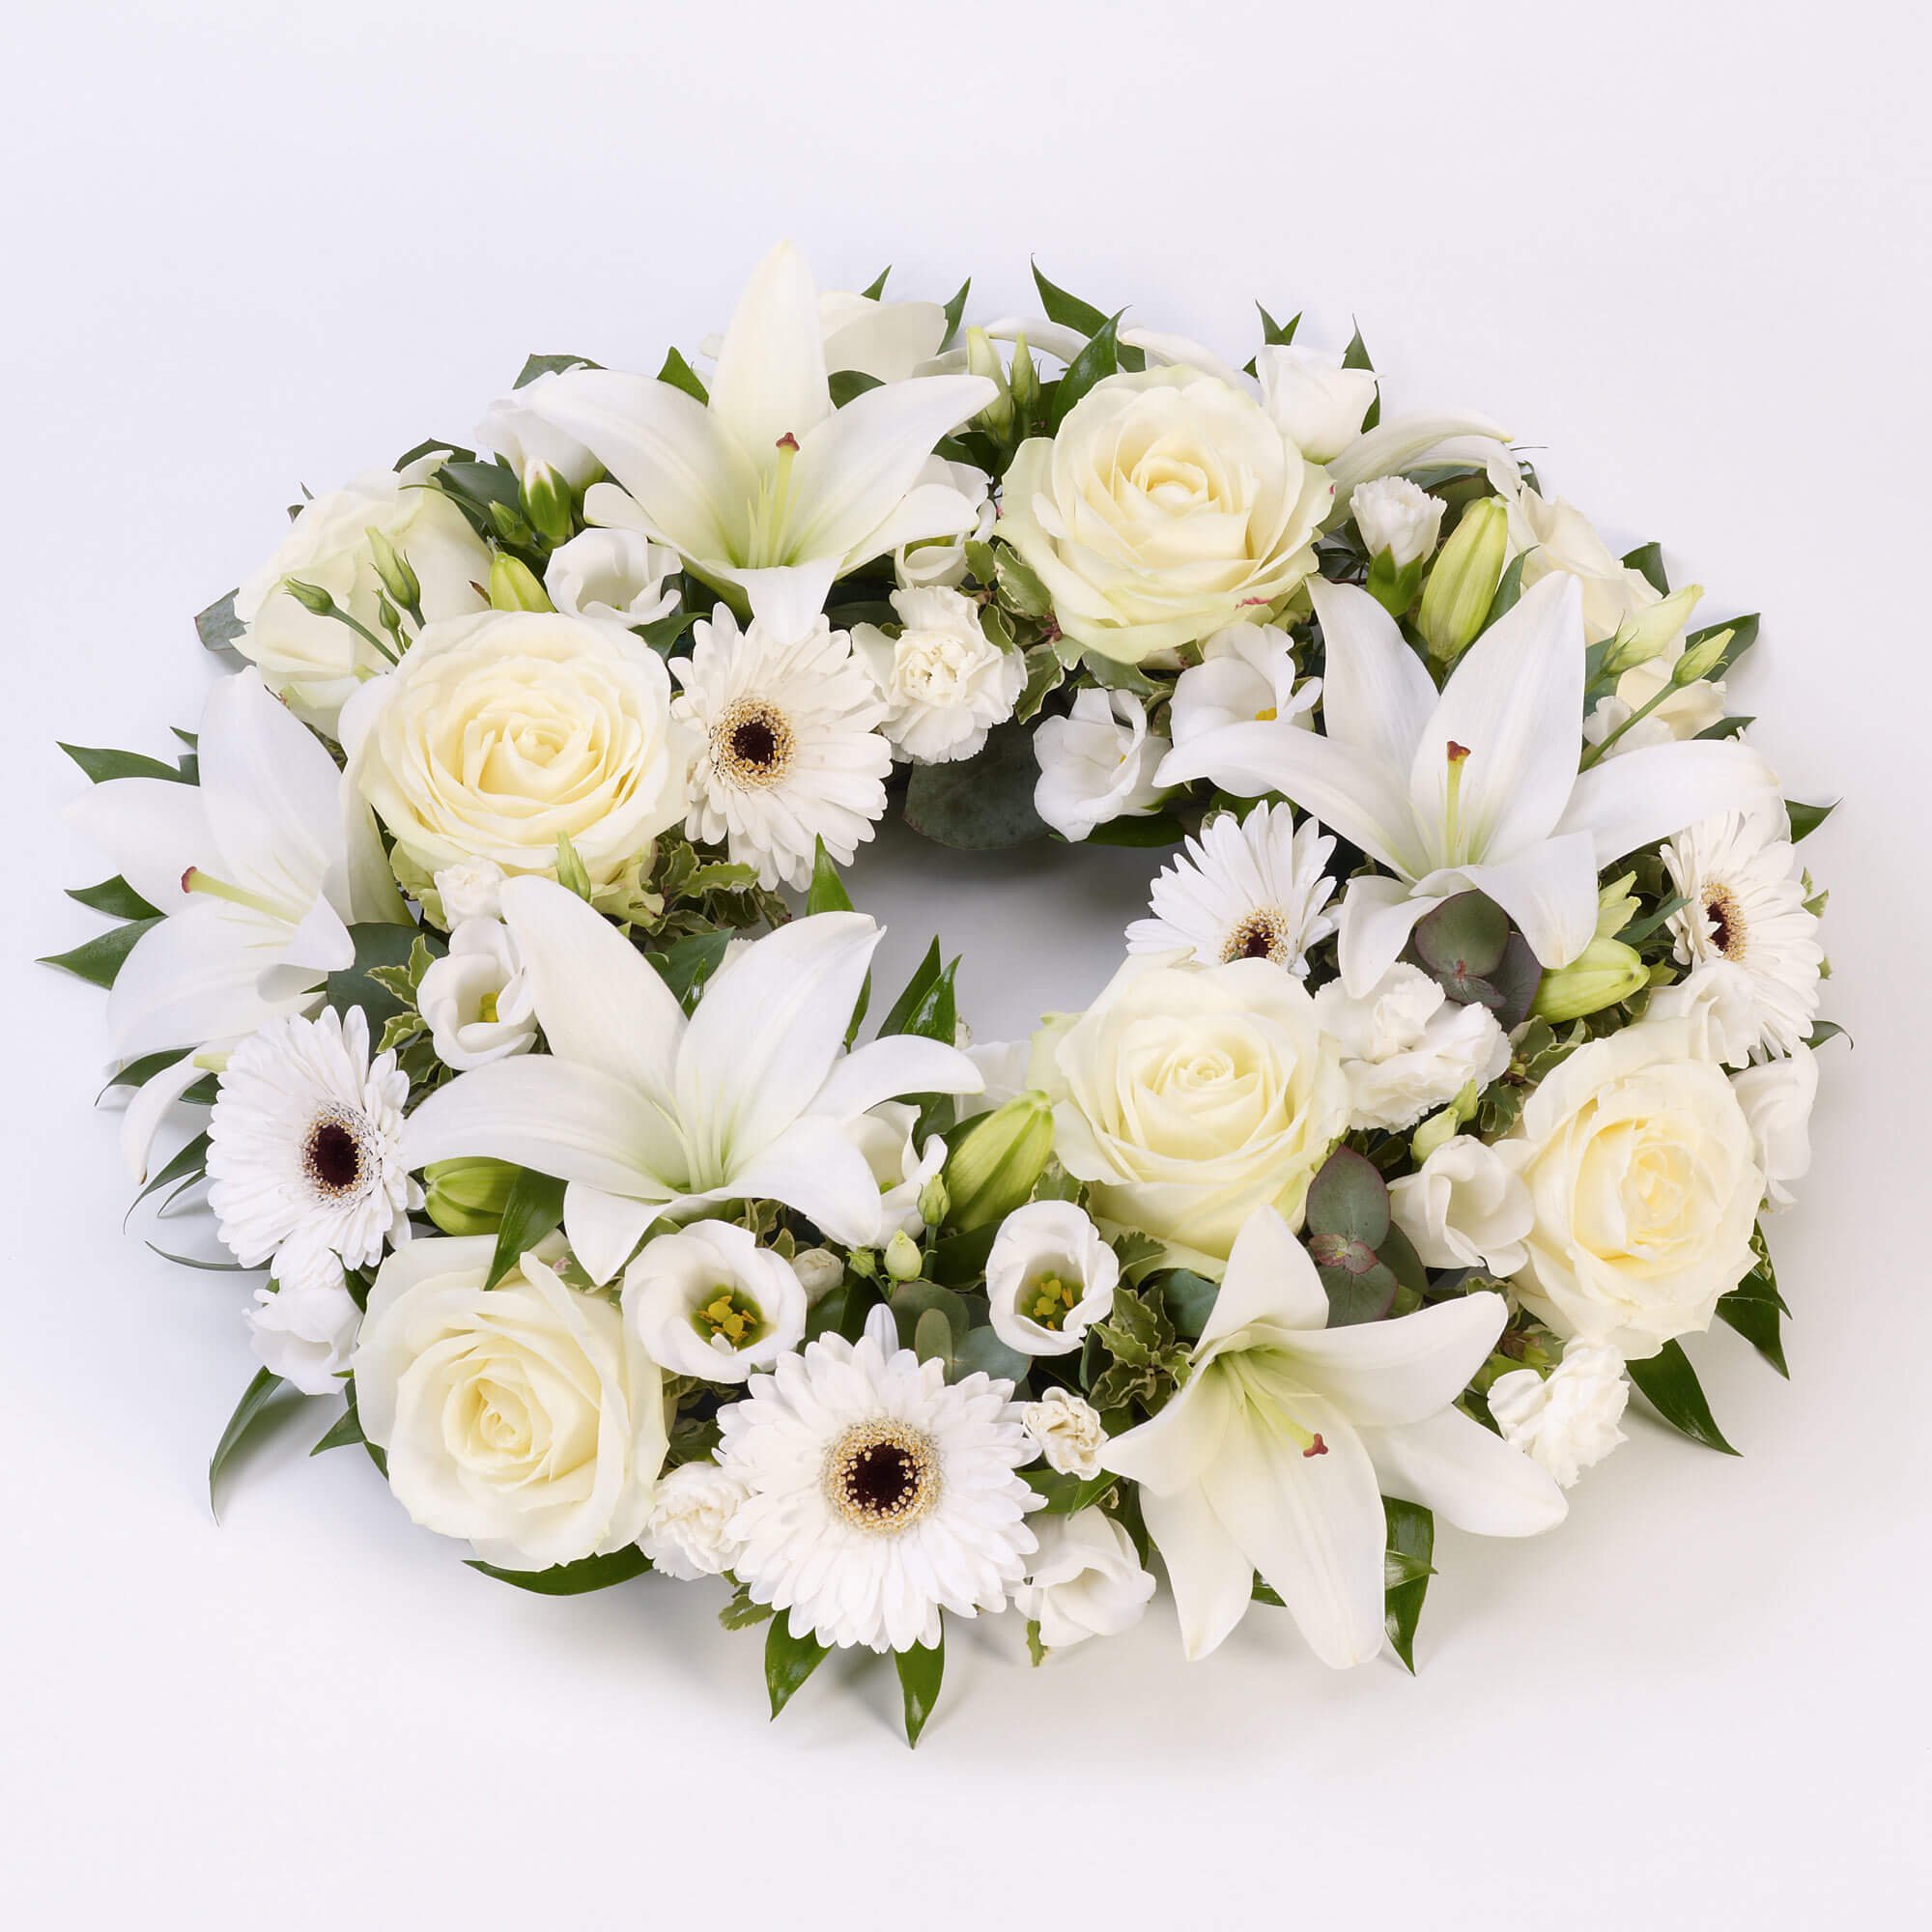 cs-rose-lily-wreath